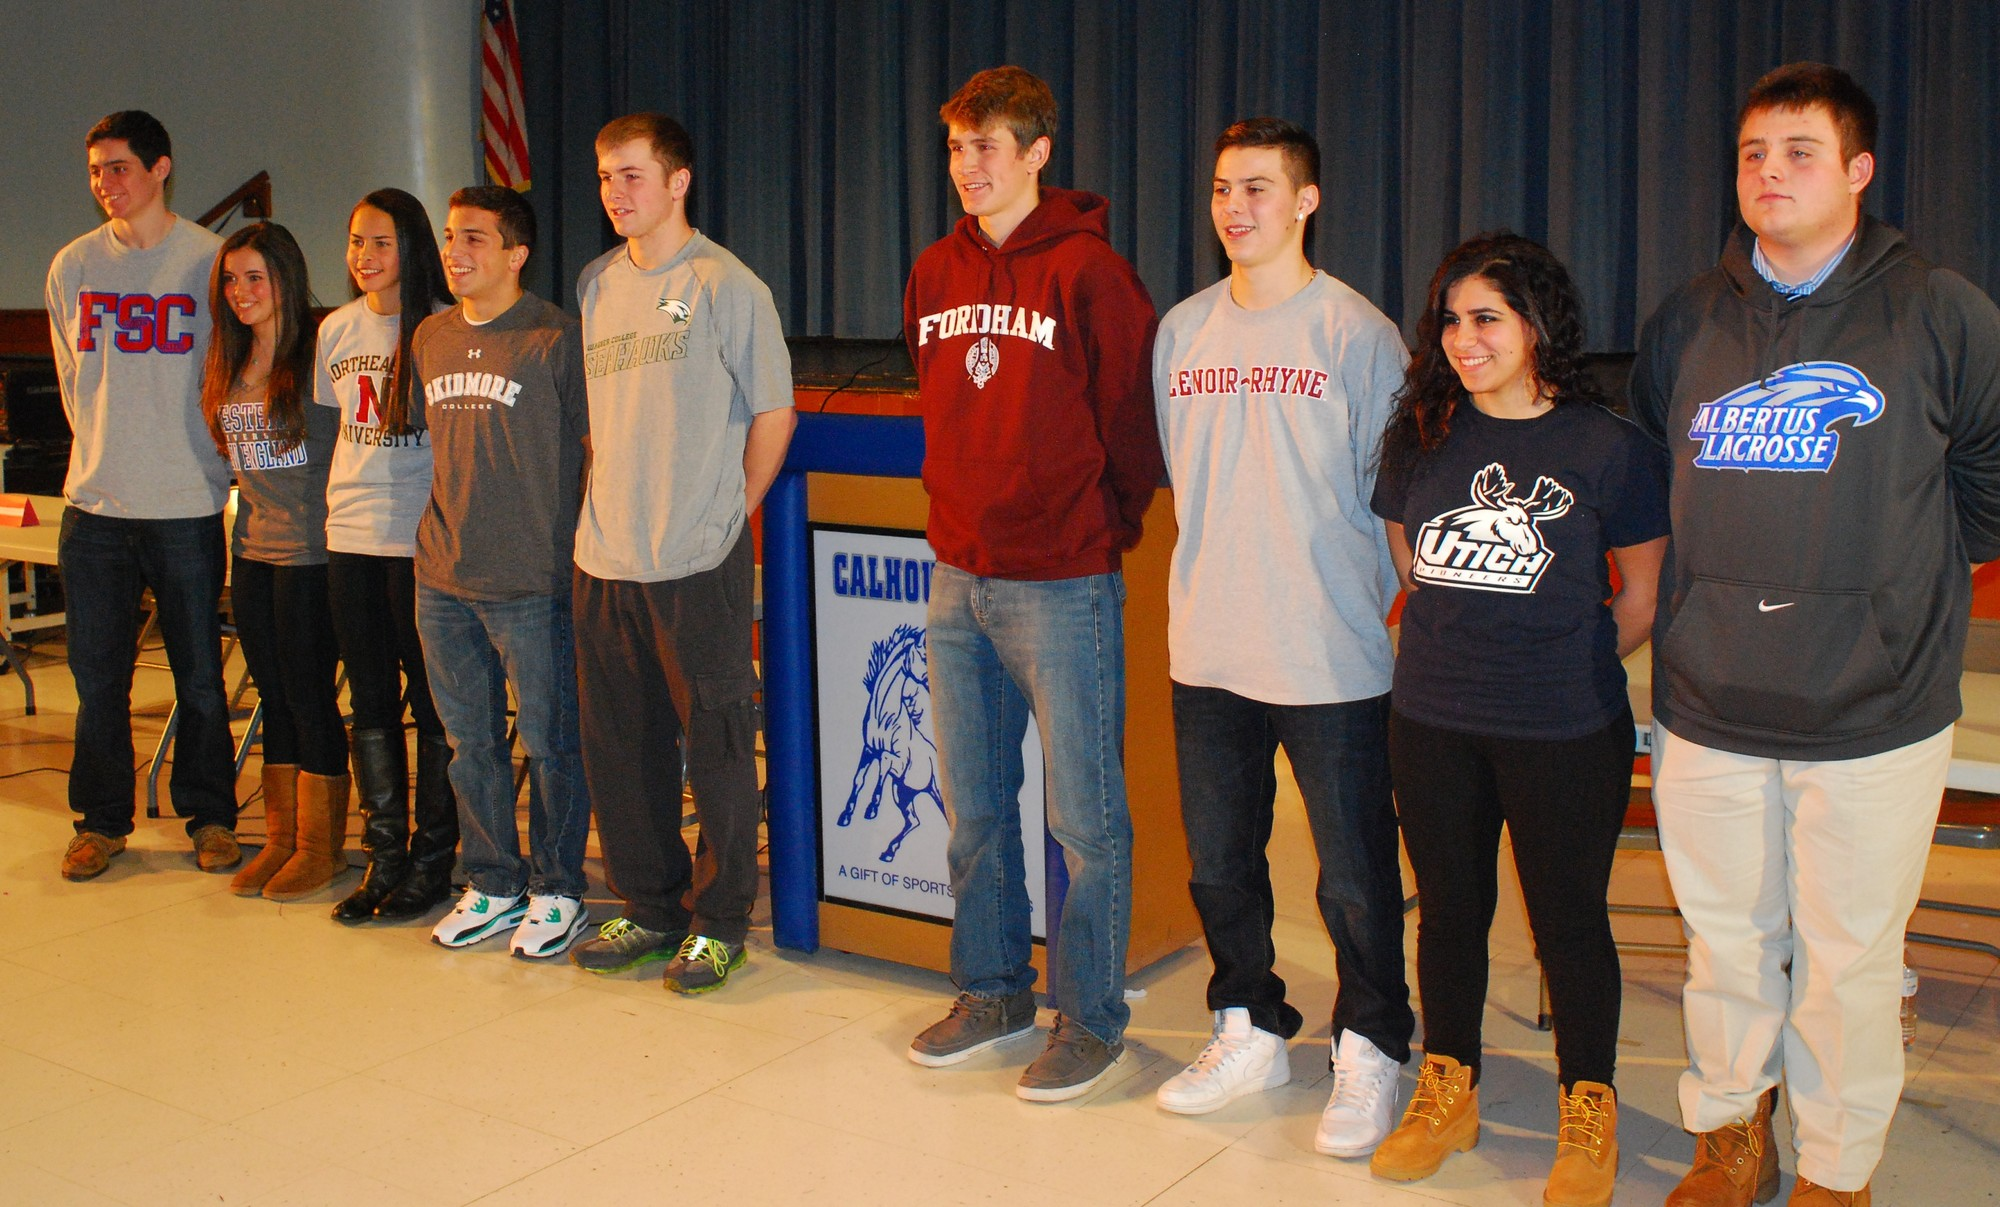 Nine Calhoun High School athletes will play sports in college next year. They are, from left, Colin Bayer, Emily Dolan, Kayla Cappuzzo, Nicholas Fronte, Kyle McGinley, Eric Ohlendorf, Jack Zito, Samantha Sanky and Jack Kerner.